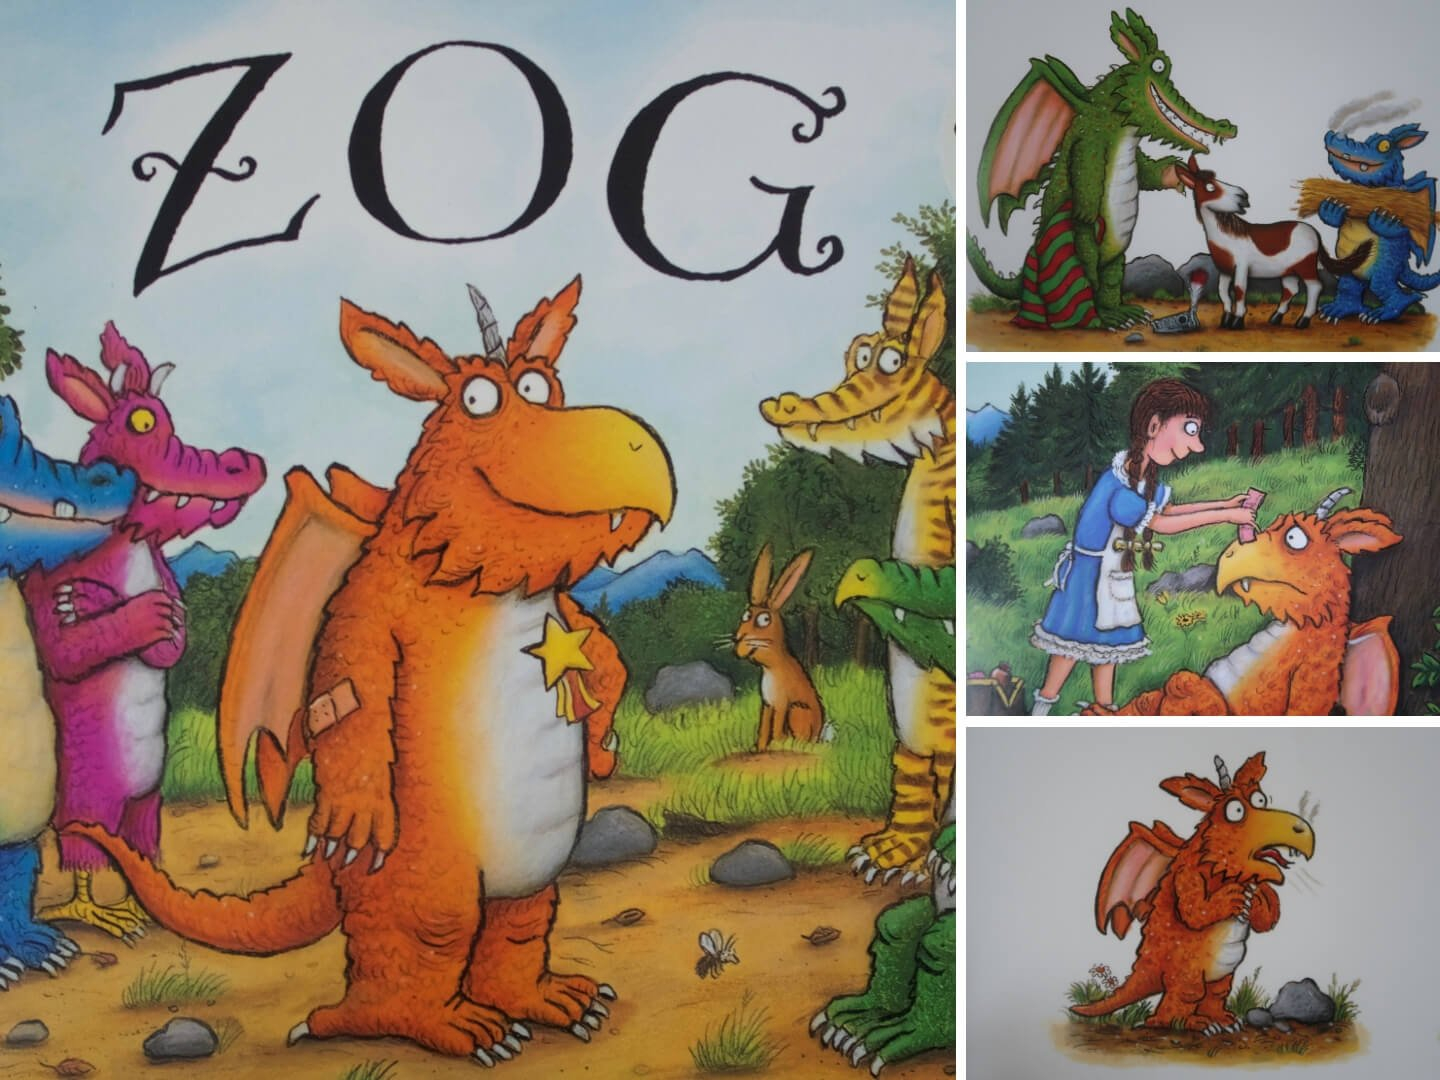 Zog by Julia Donaldson - Sticker by Numbers EYFS activity